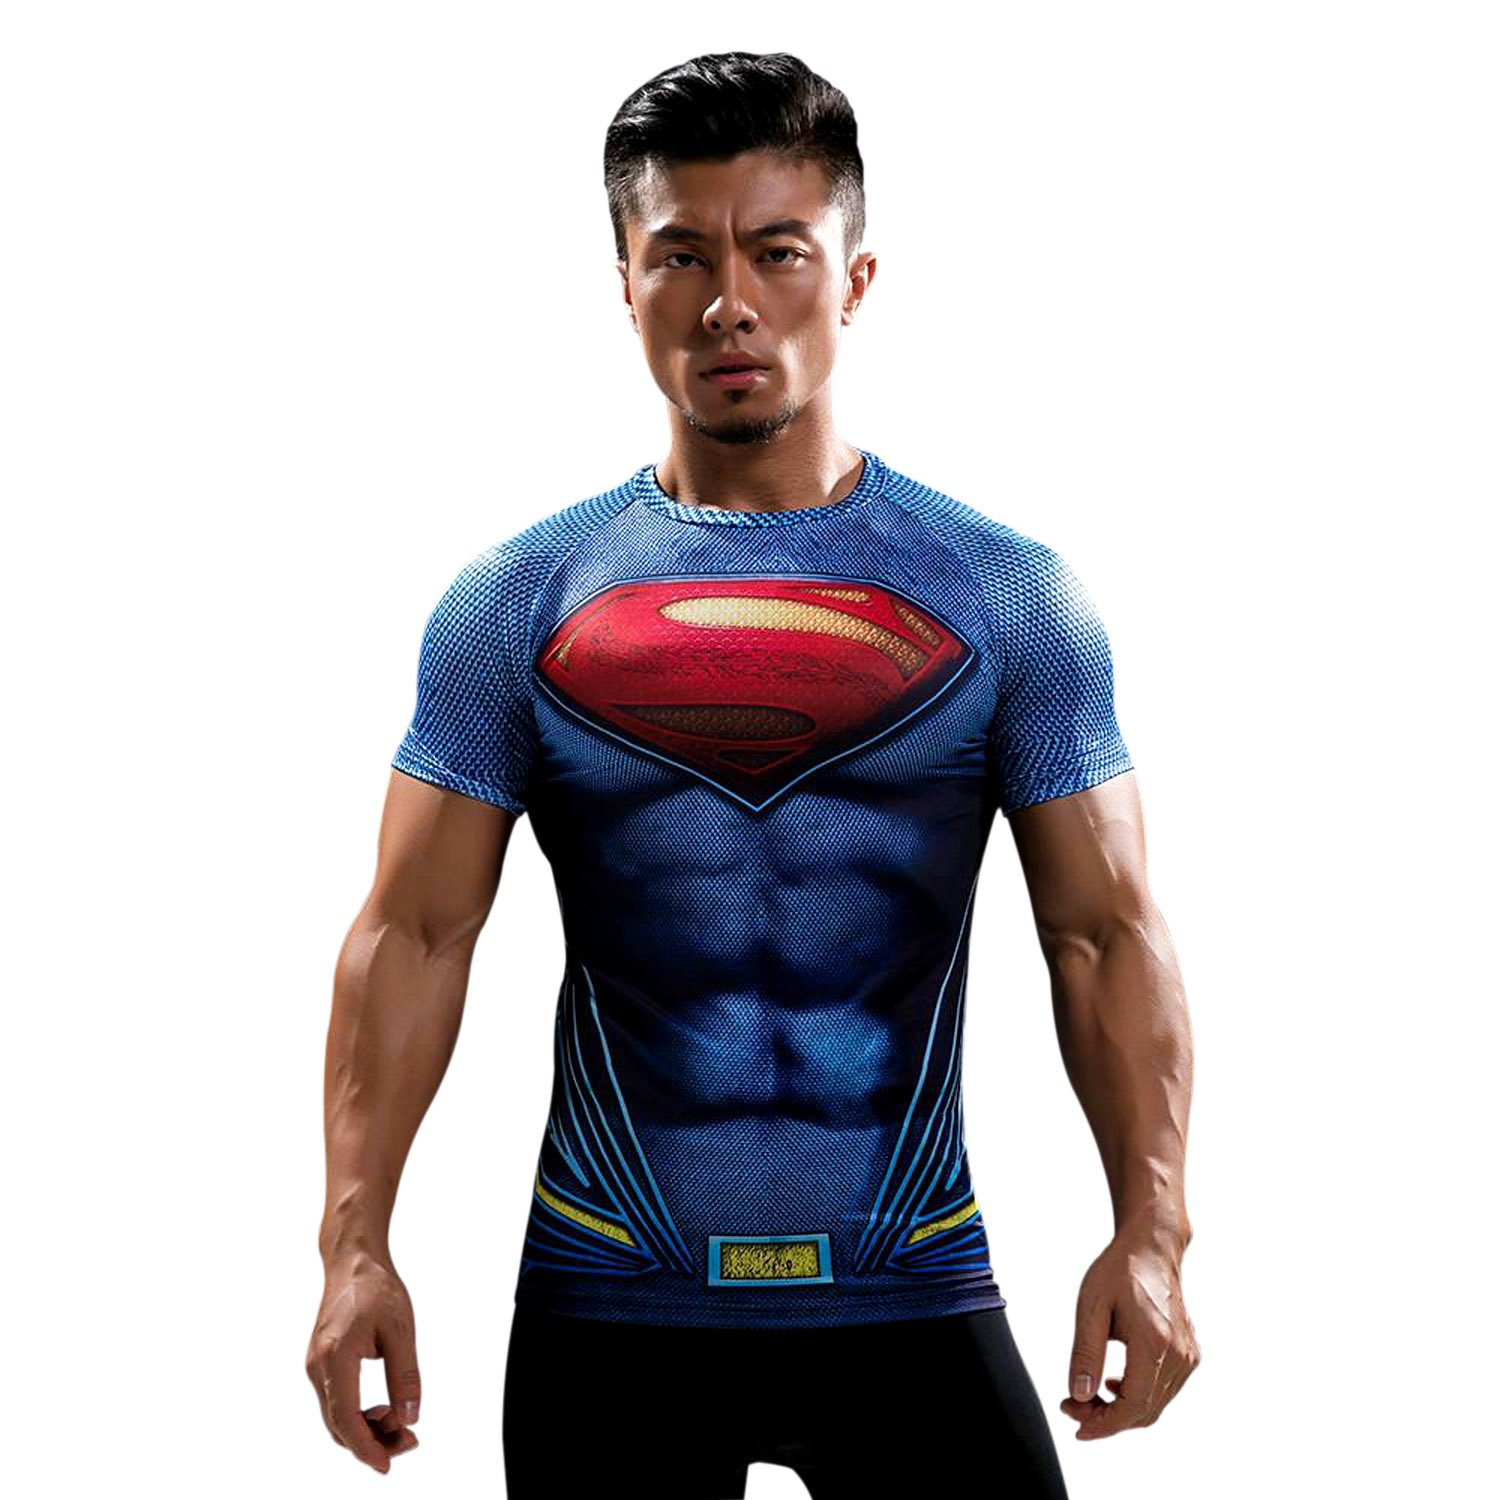 a87afa19 Treemoda Men's Polyester T-shirt for Gym/Yoga/Bikram/Crossfit/Athletics/ Fitness/Workout (Multicolour, Medium): Amazon.in: Clothing & Accessories